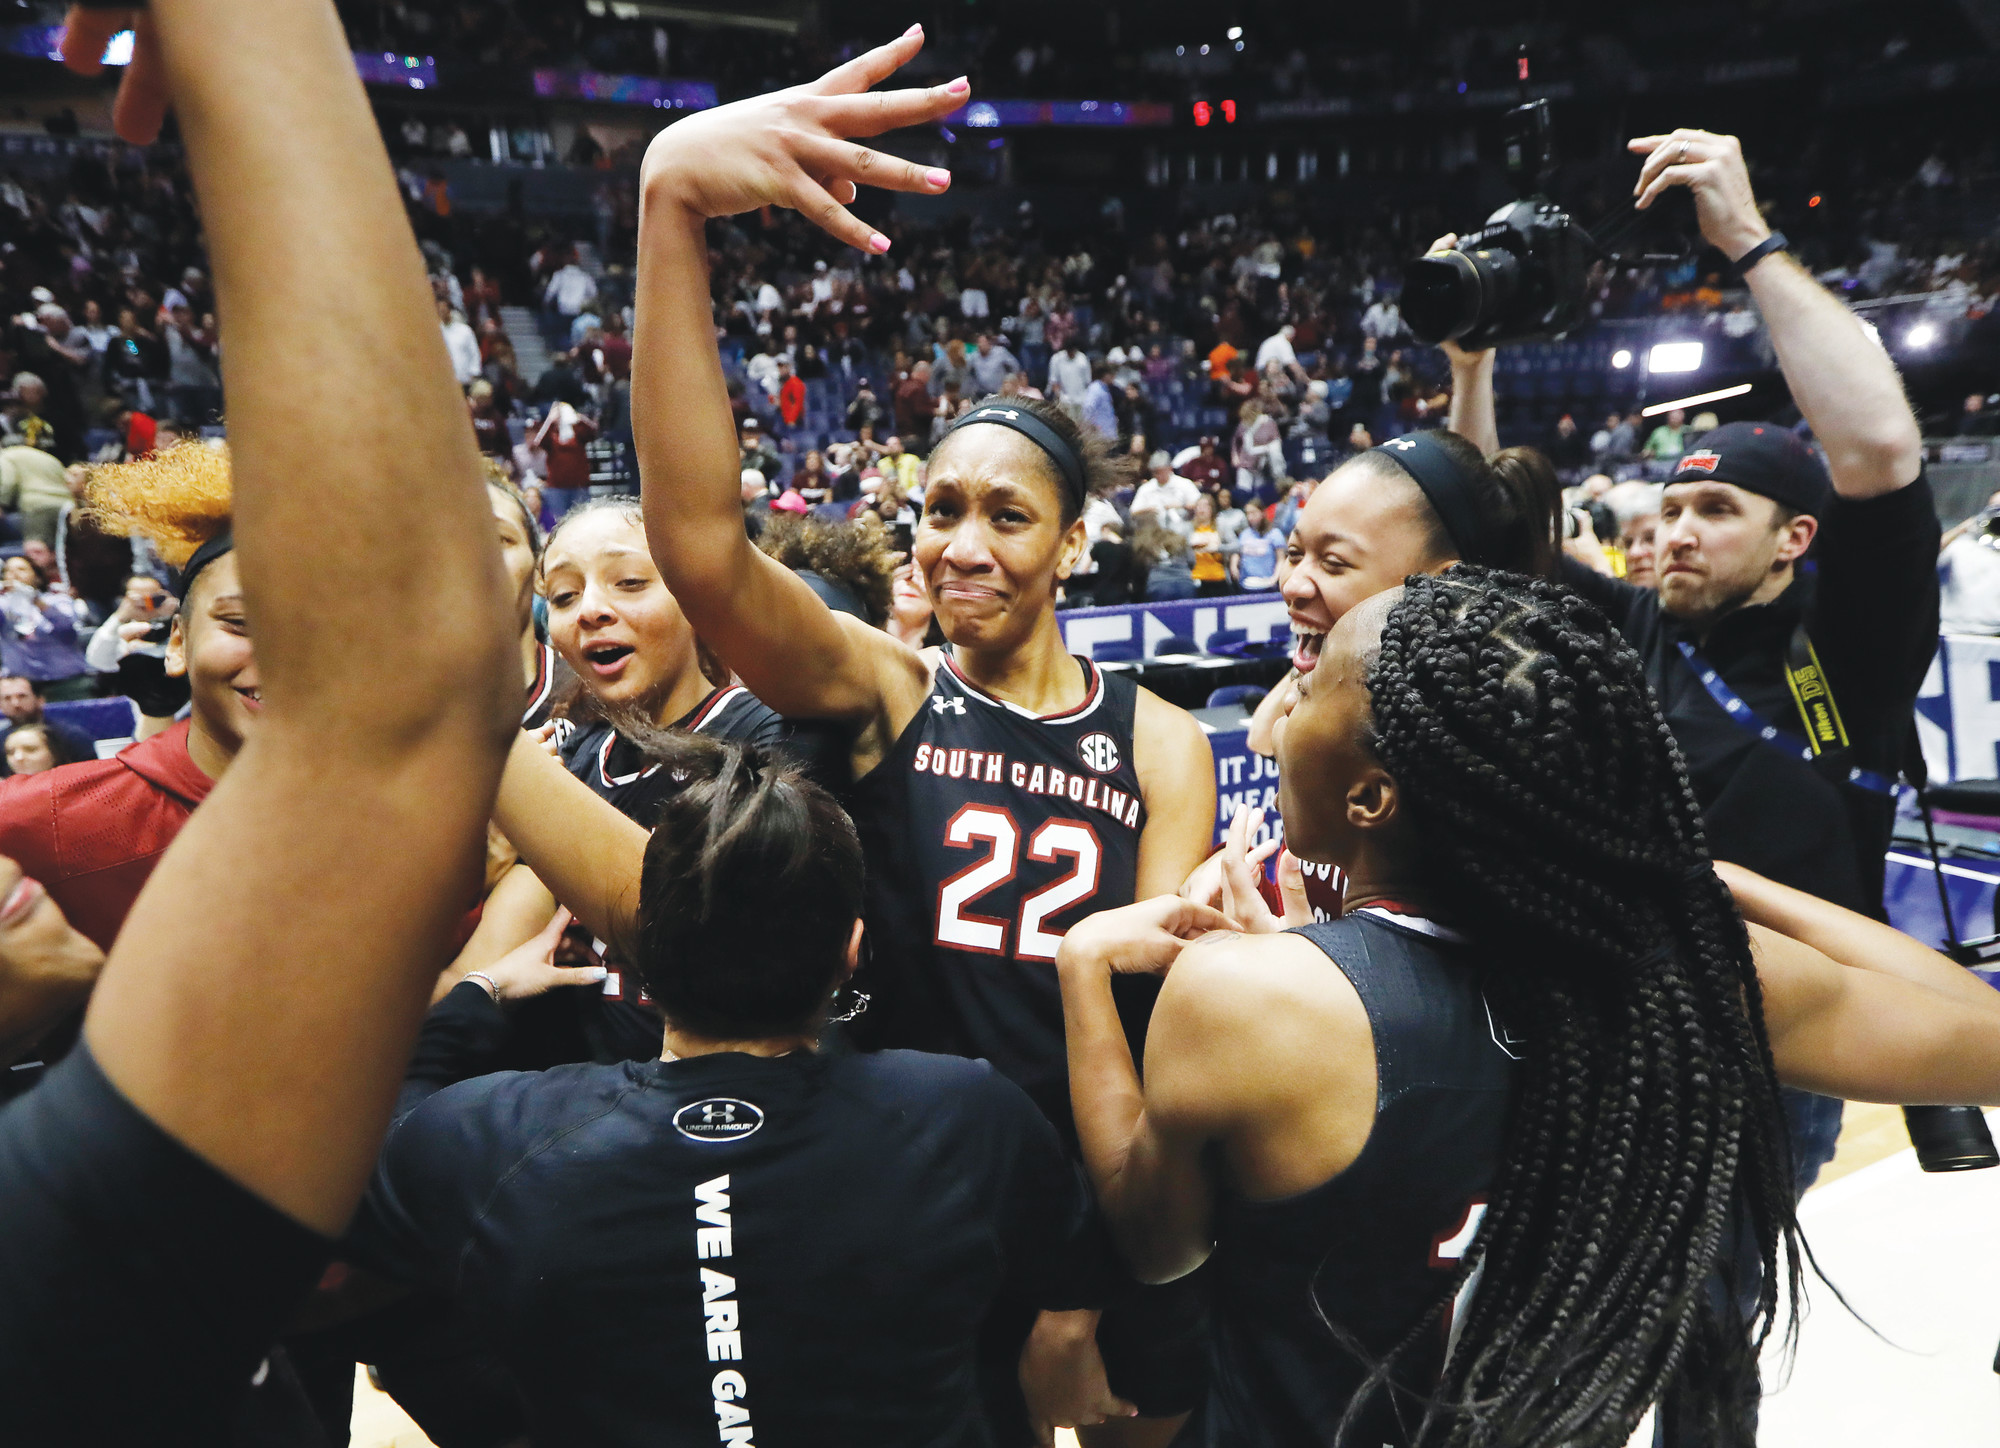 THE ASSOCIATED PRESSSouth Carolina's A'ja Wilson (22) celebrates with her teammates after the Gamecocks defeated Mississippi State 62-51 to win the Southeastern Conference tournament championship for the fourth straight season on Sunday in Nashville, Tenn. USC snapped the Bulldogs' 32-game winning streak as well.